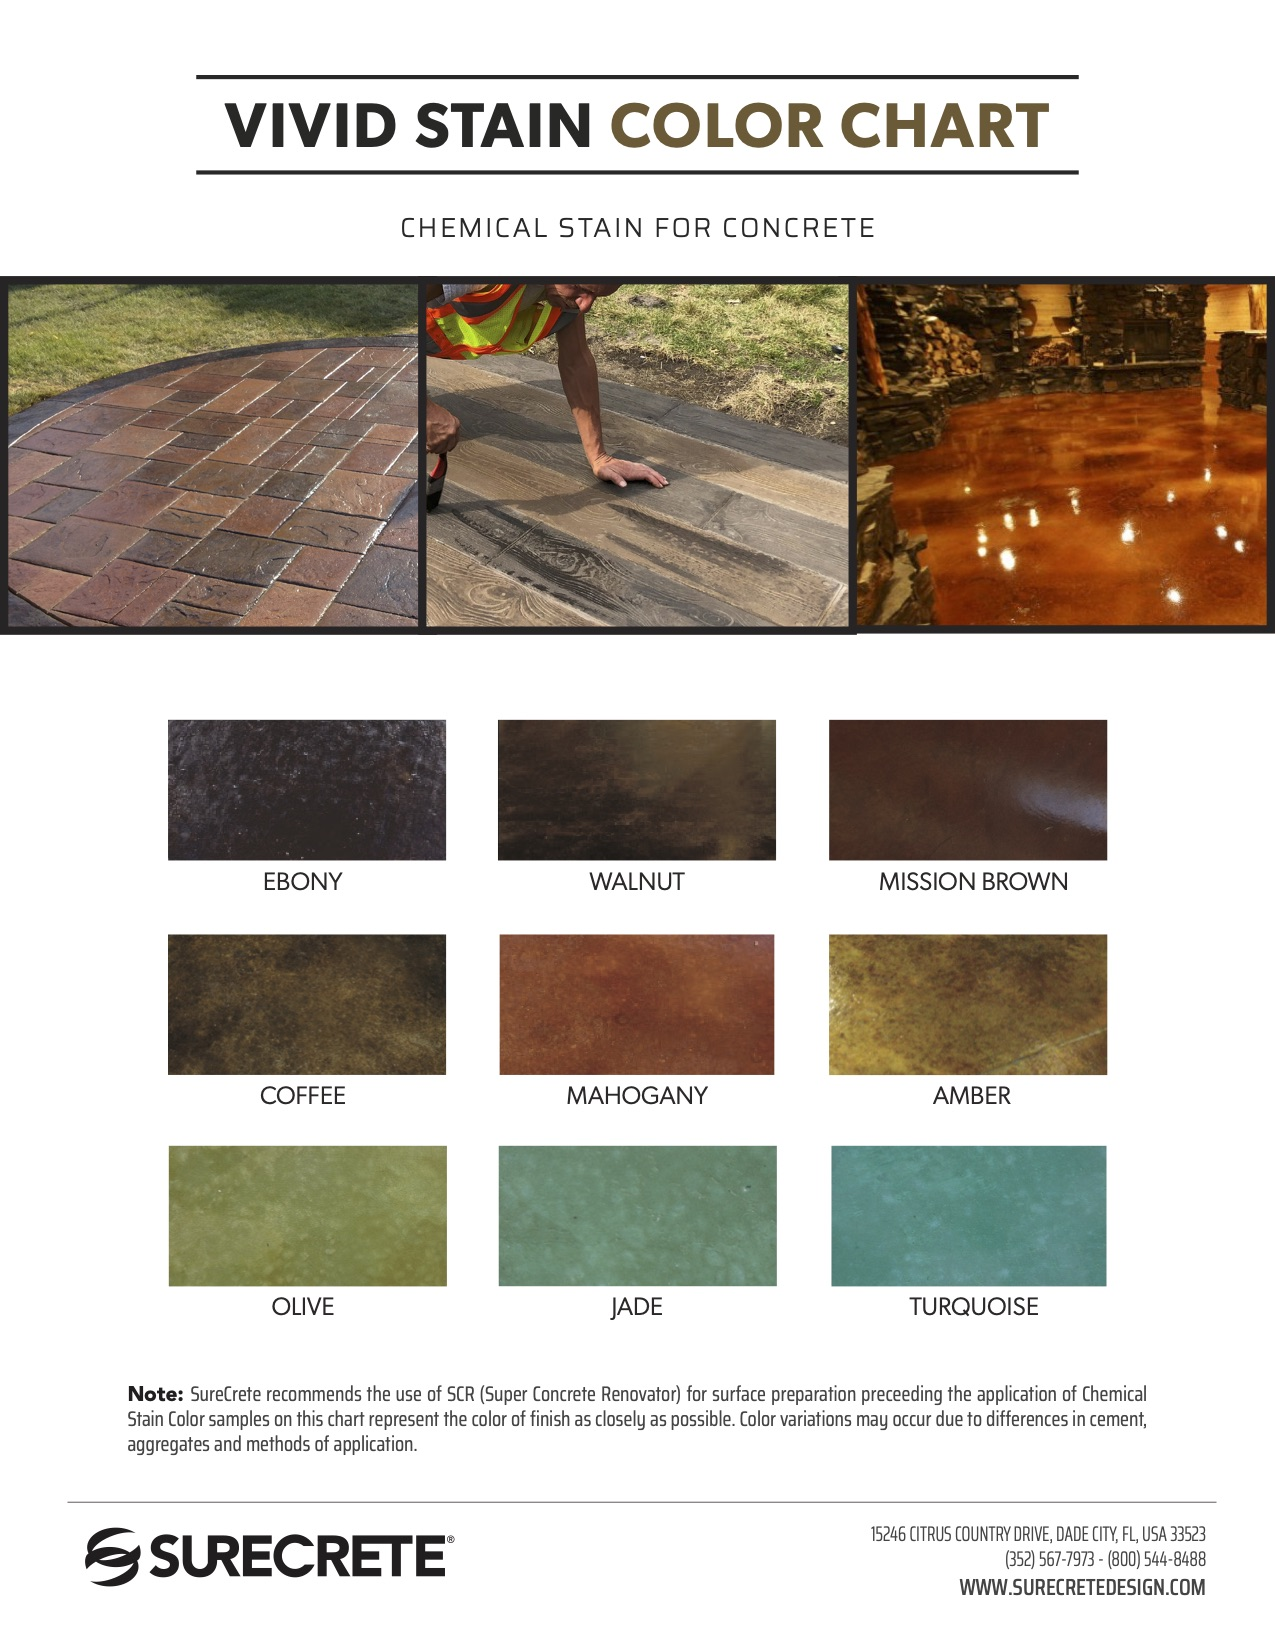 Vivid Stain Color Chart